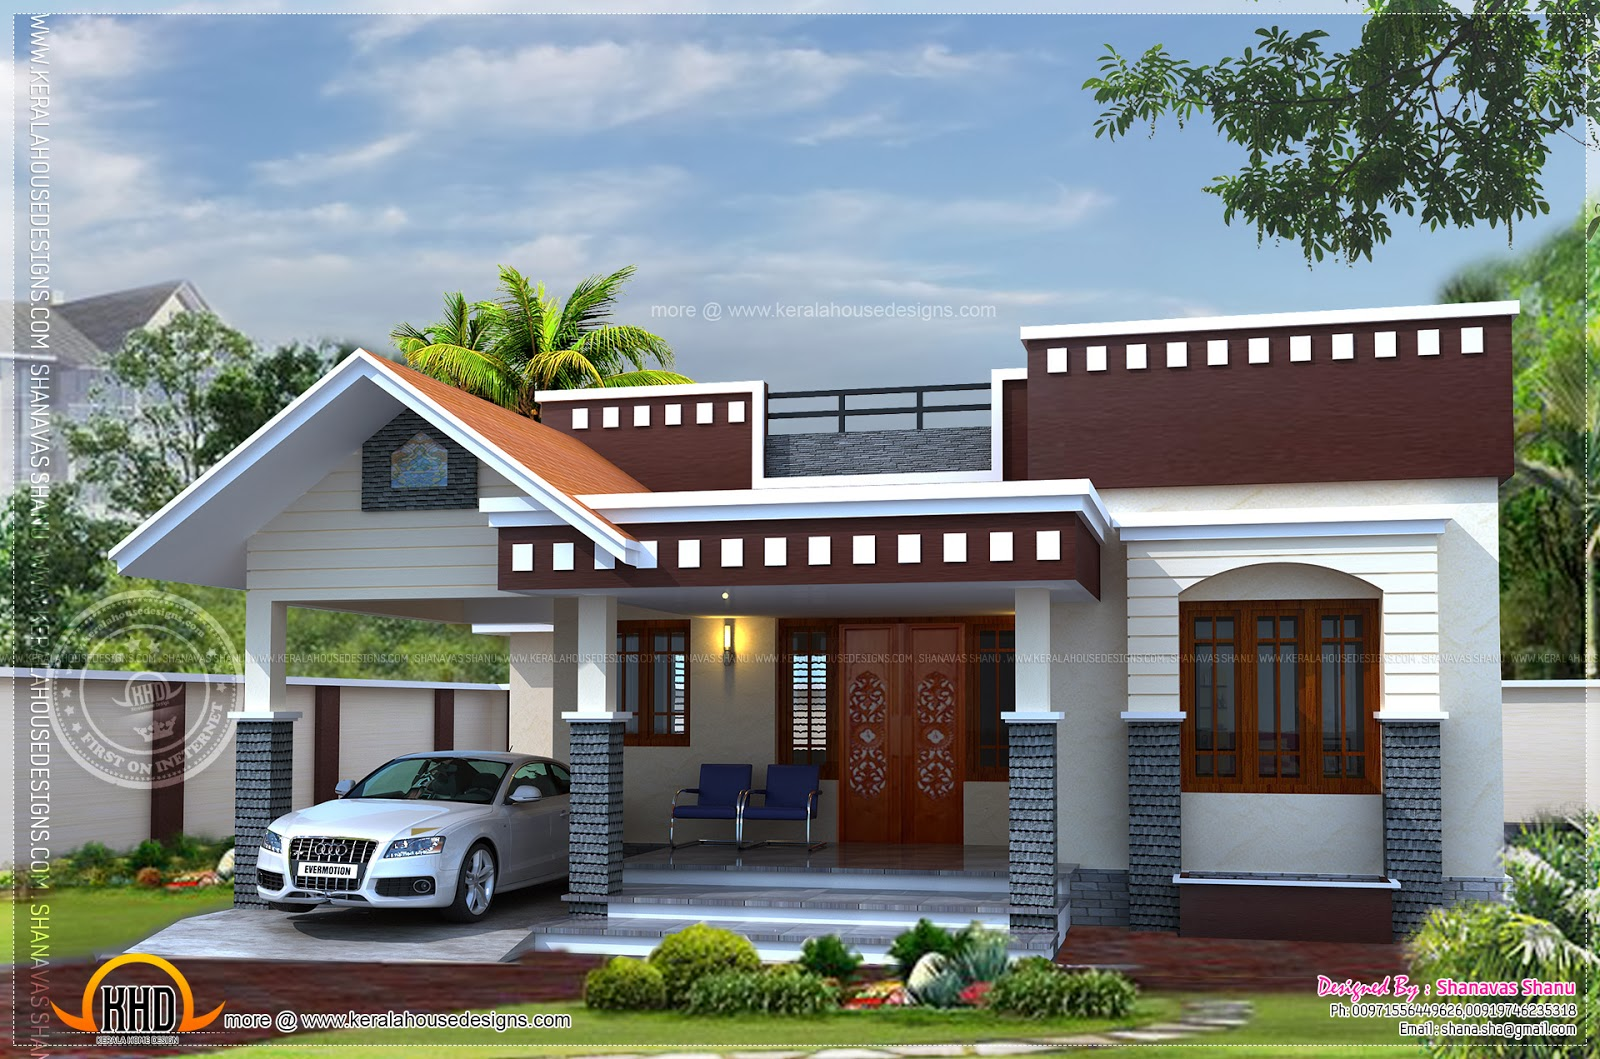 Home plan of small house kerala home design and floor plans for Small house plans and designs